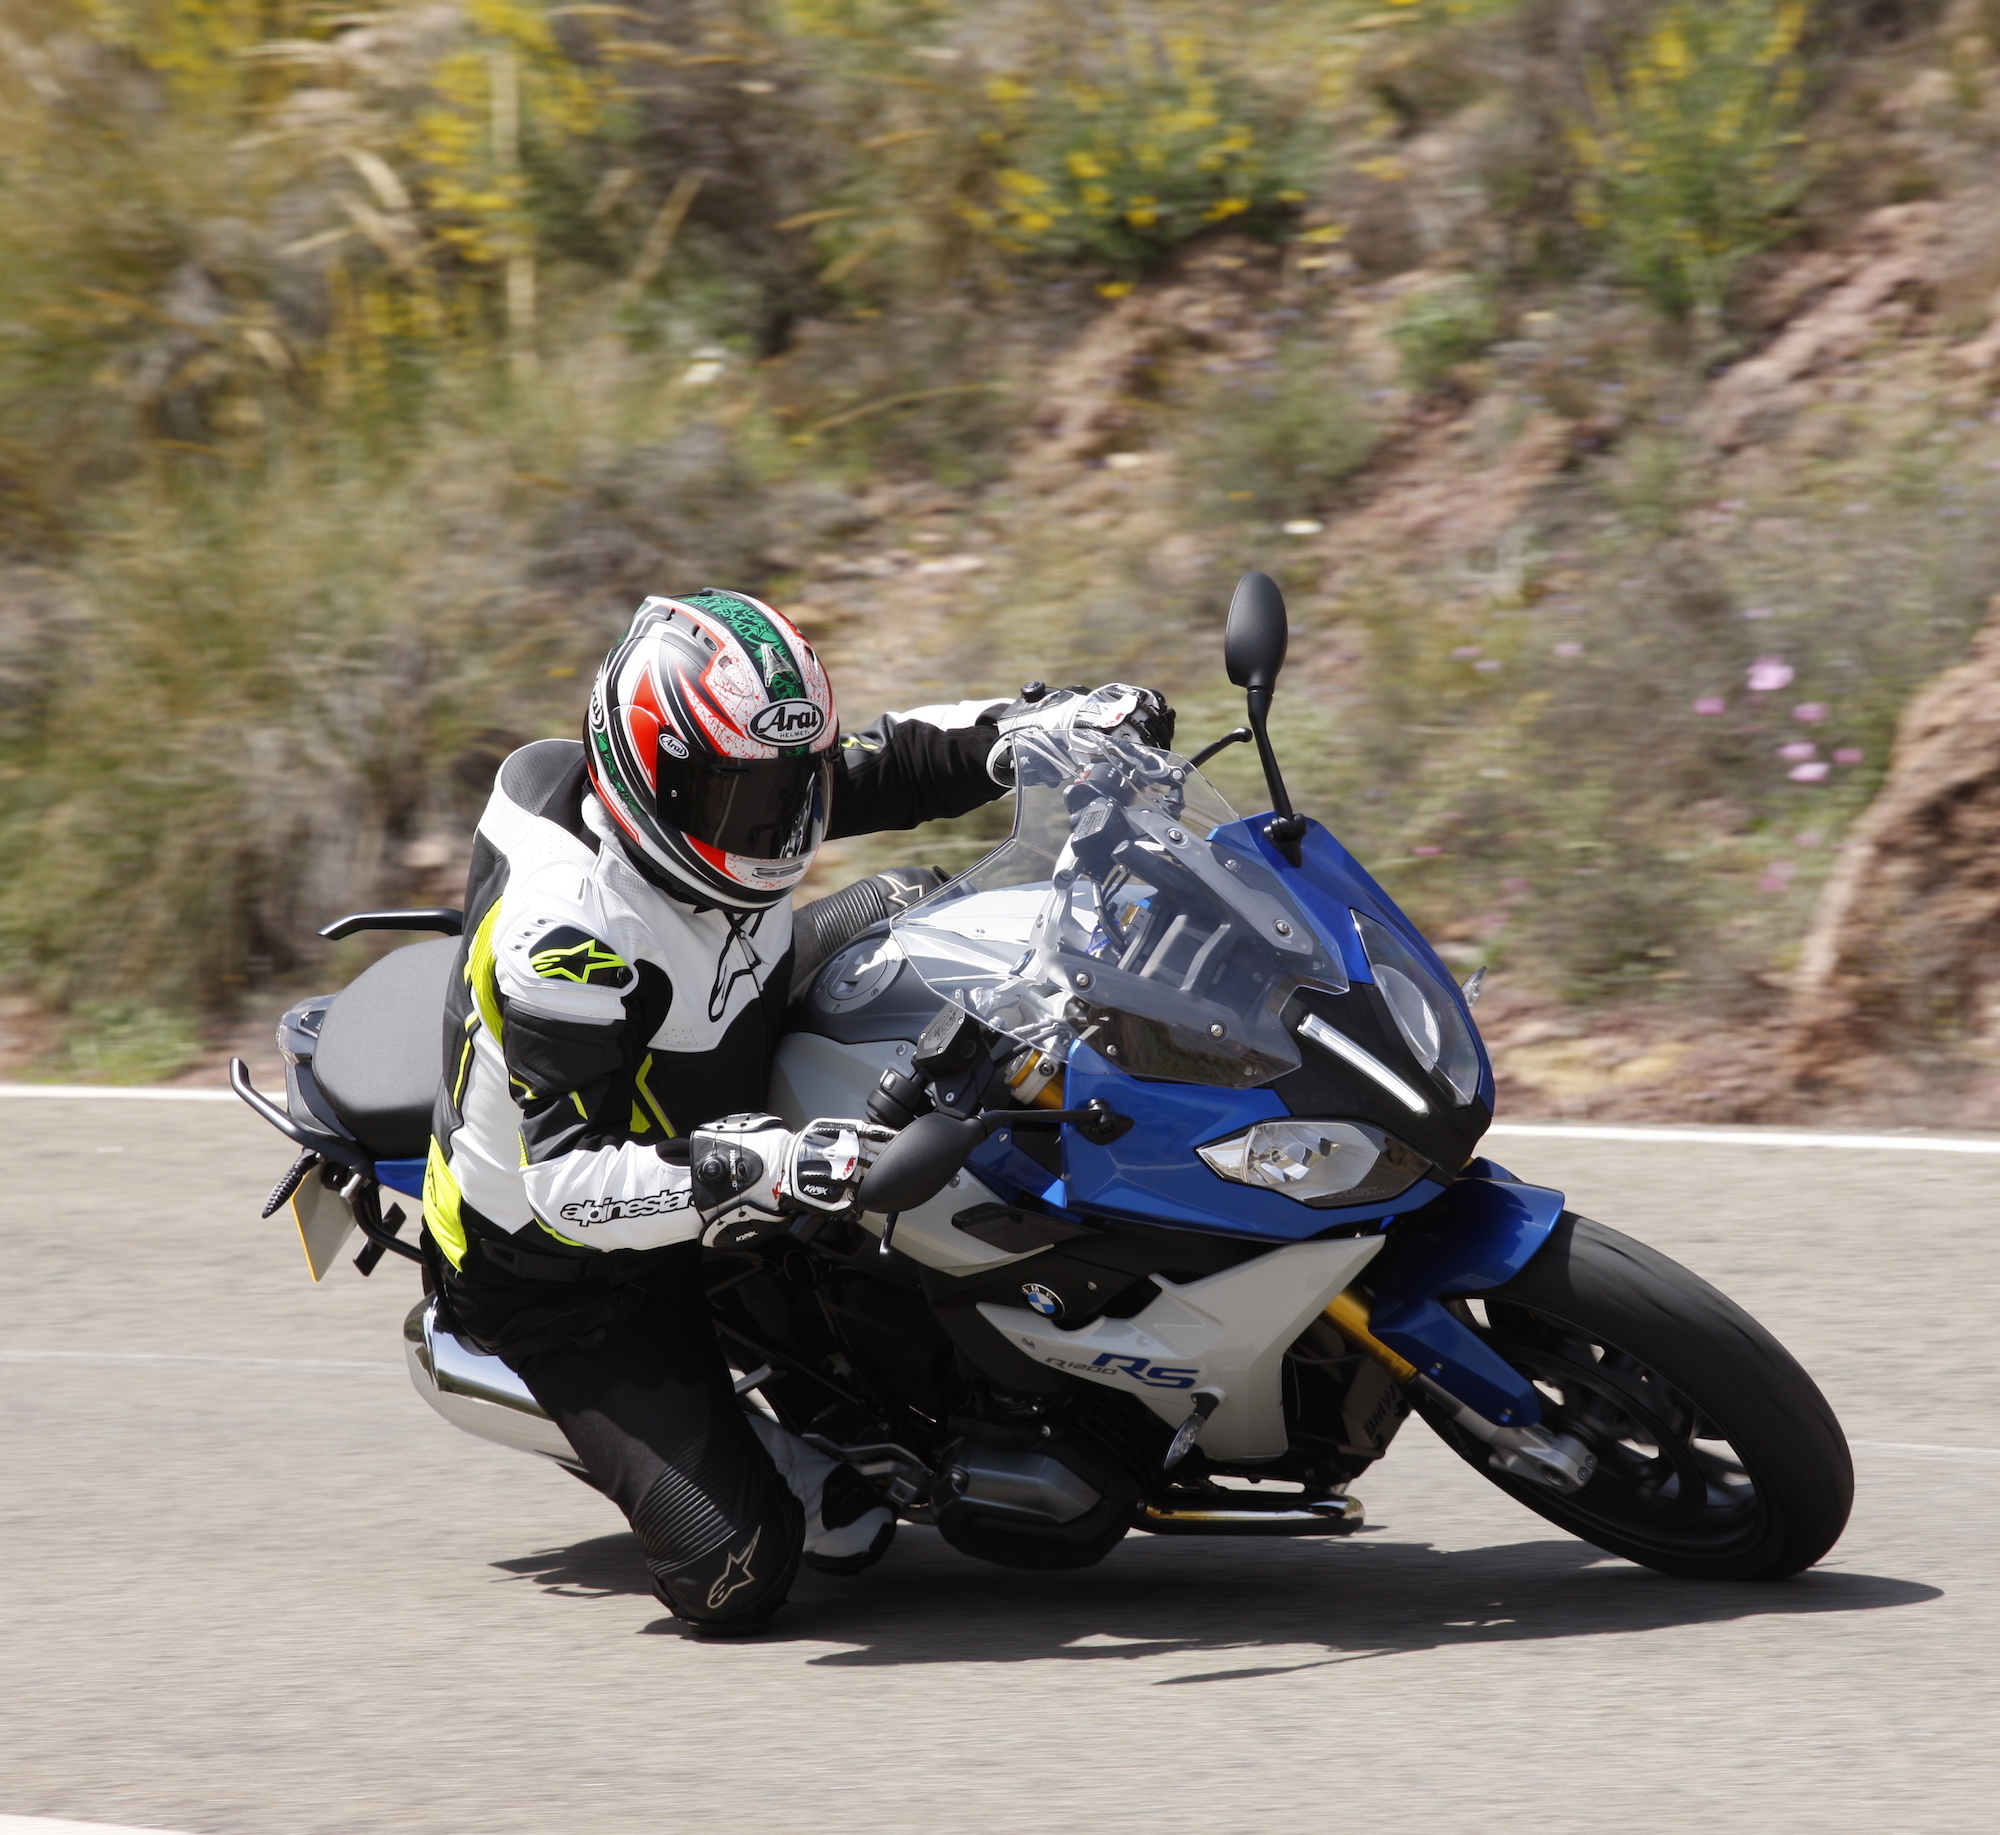 Bmw 2015 R1200 Rs First Ride Review Superbike Magazine | Autos Post